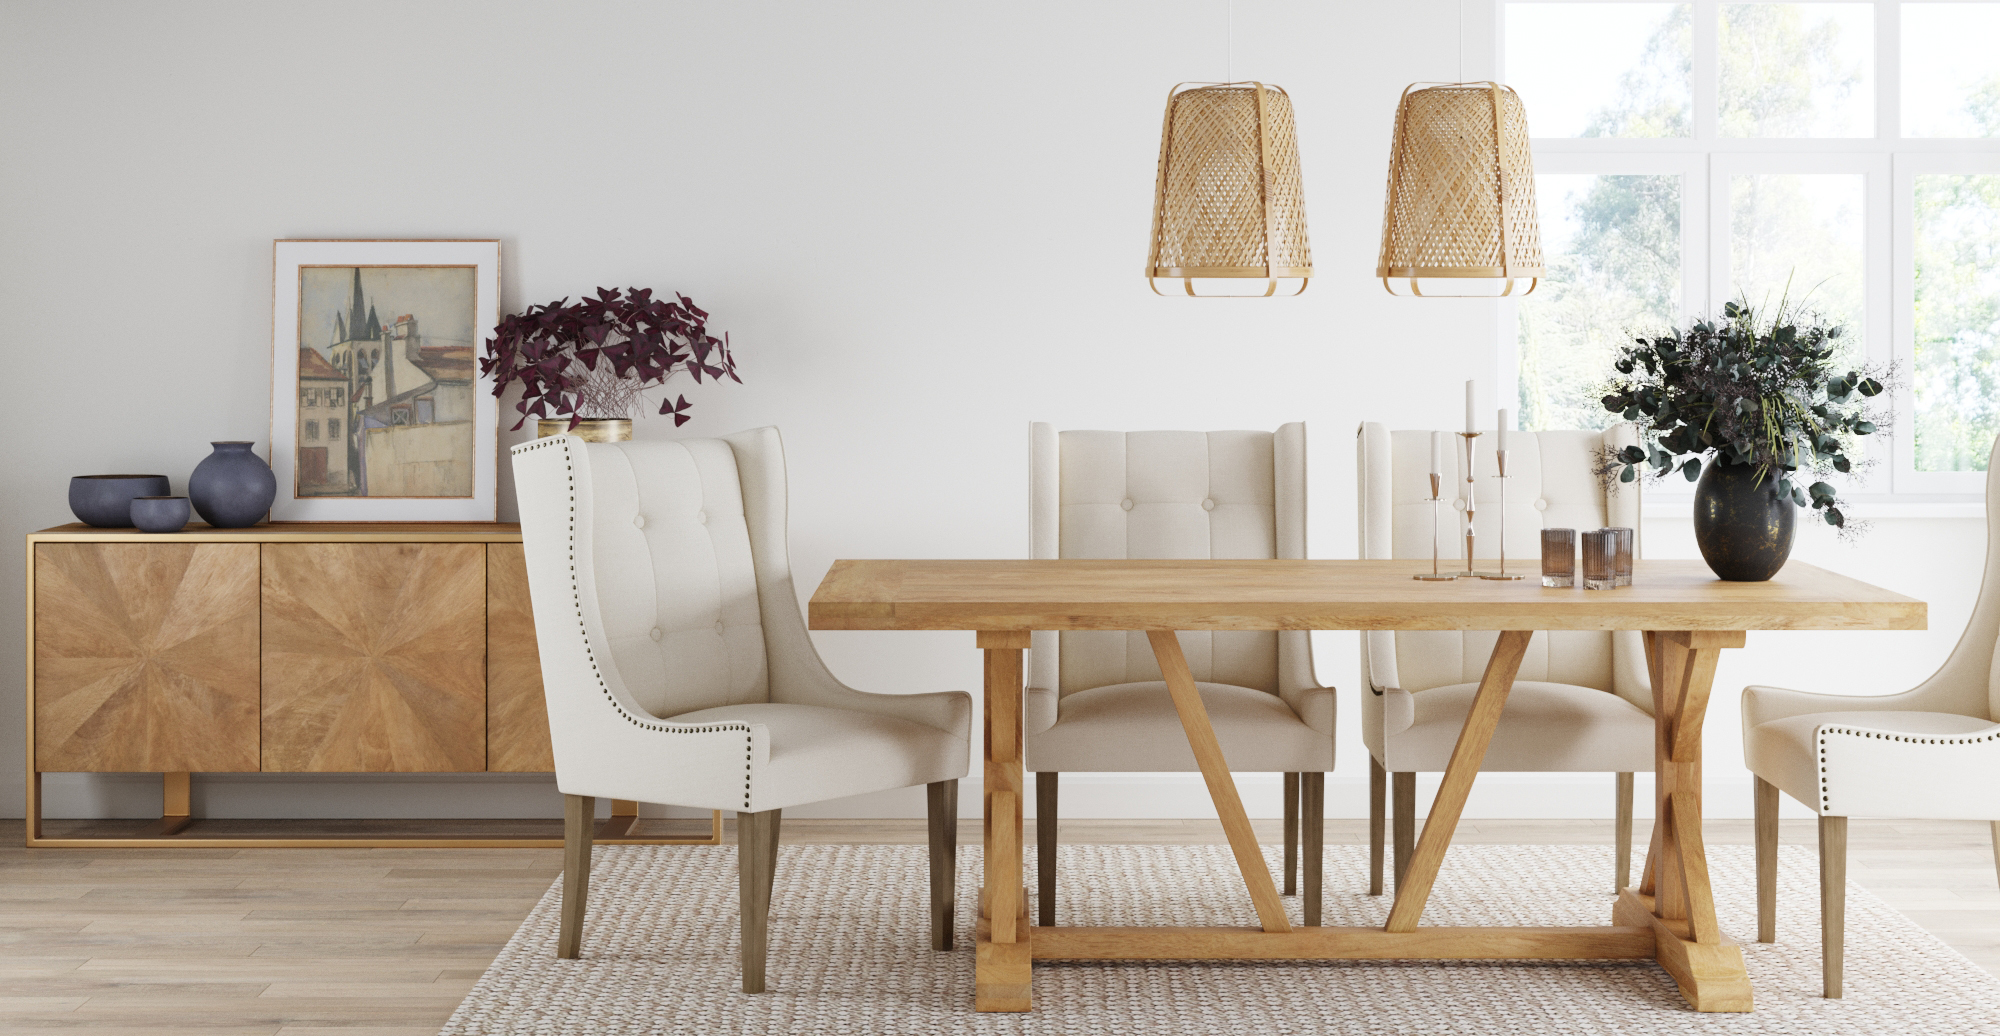 Brosa Ashley Scoop Back Dining Chair styled in classic traditional dining room